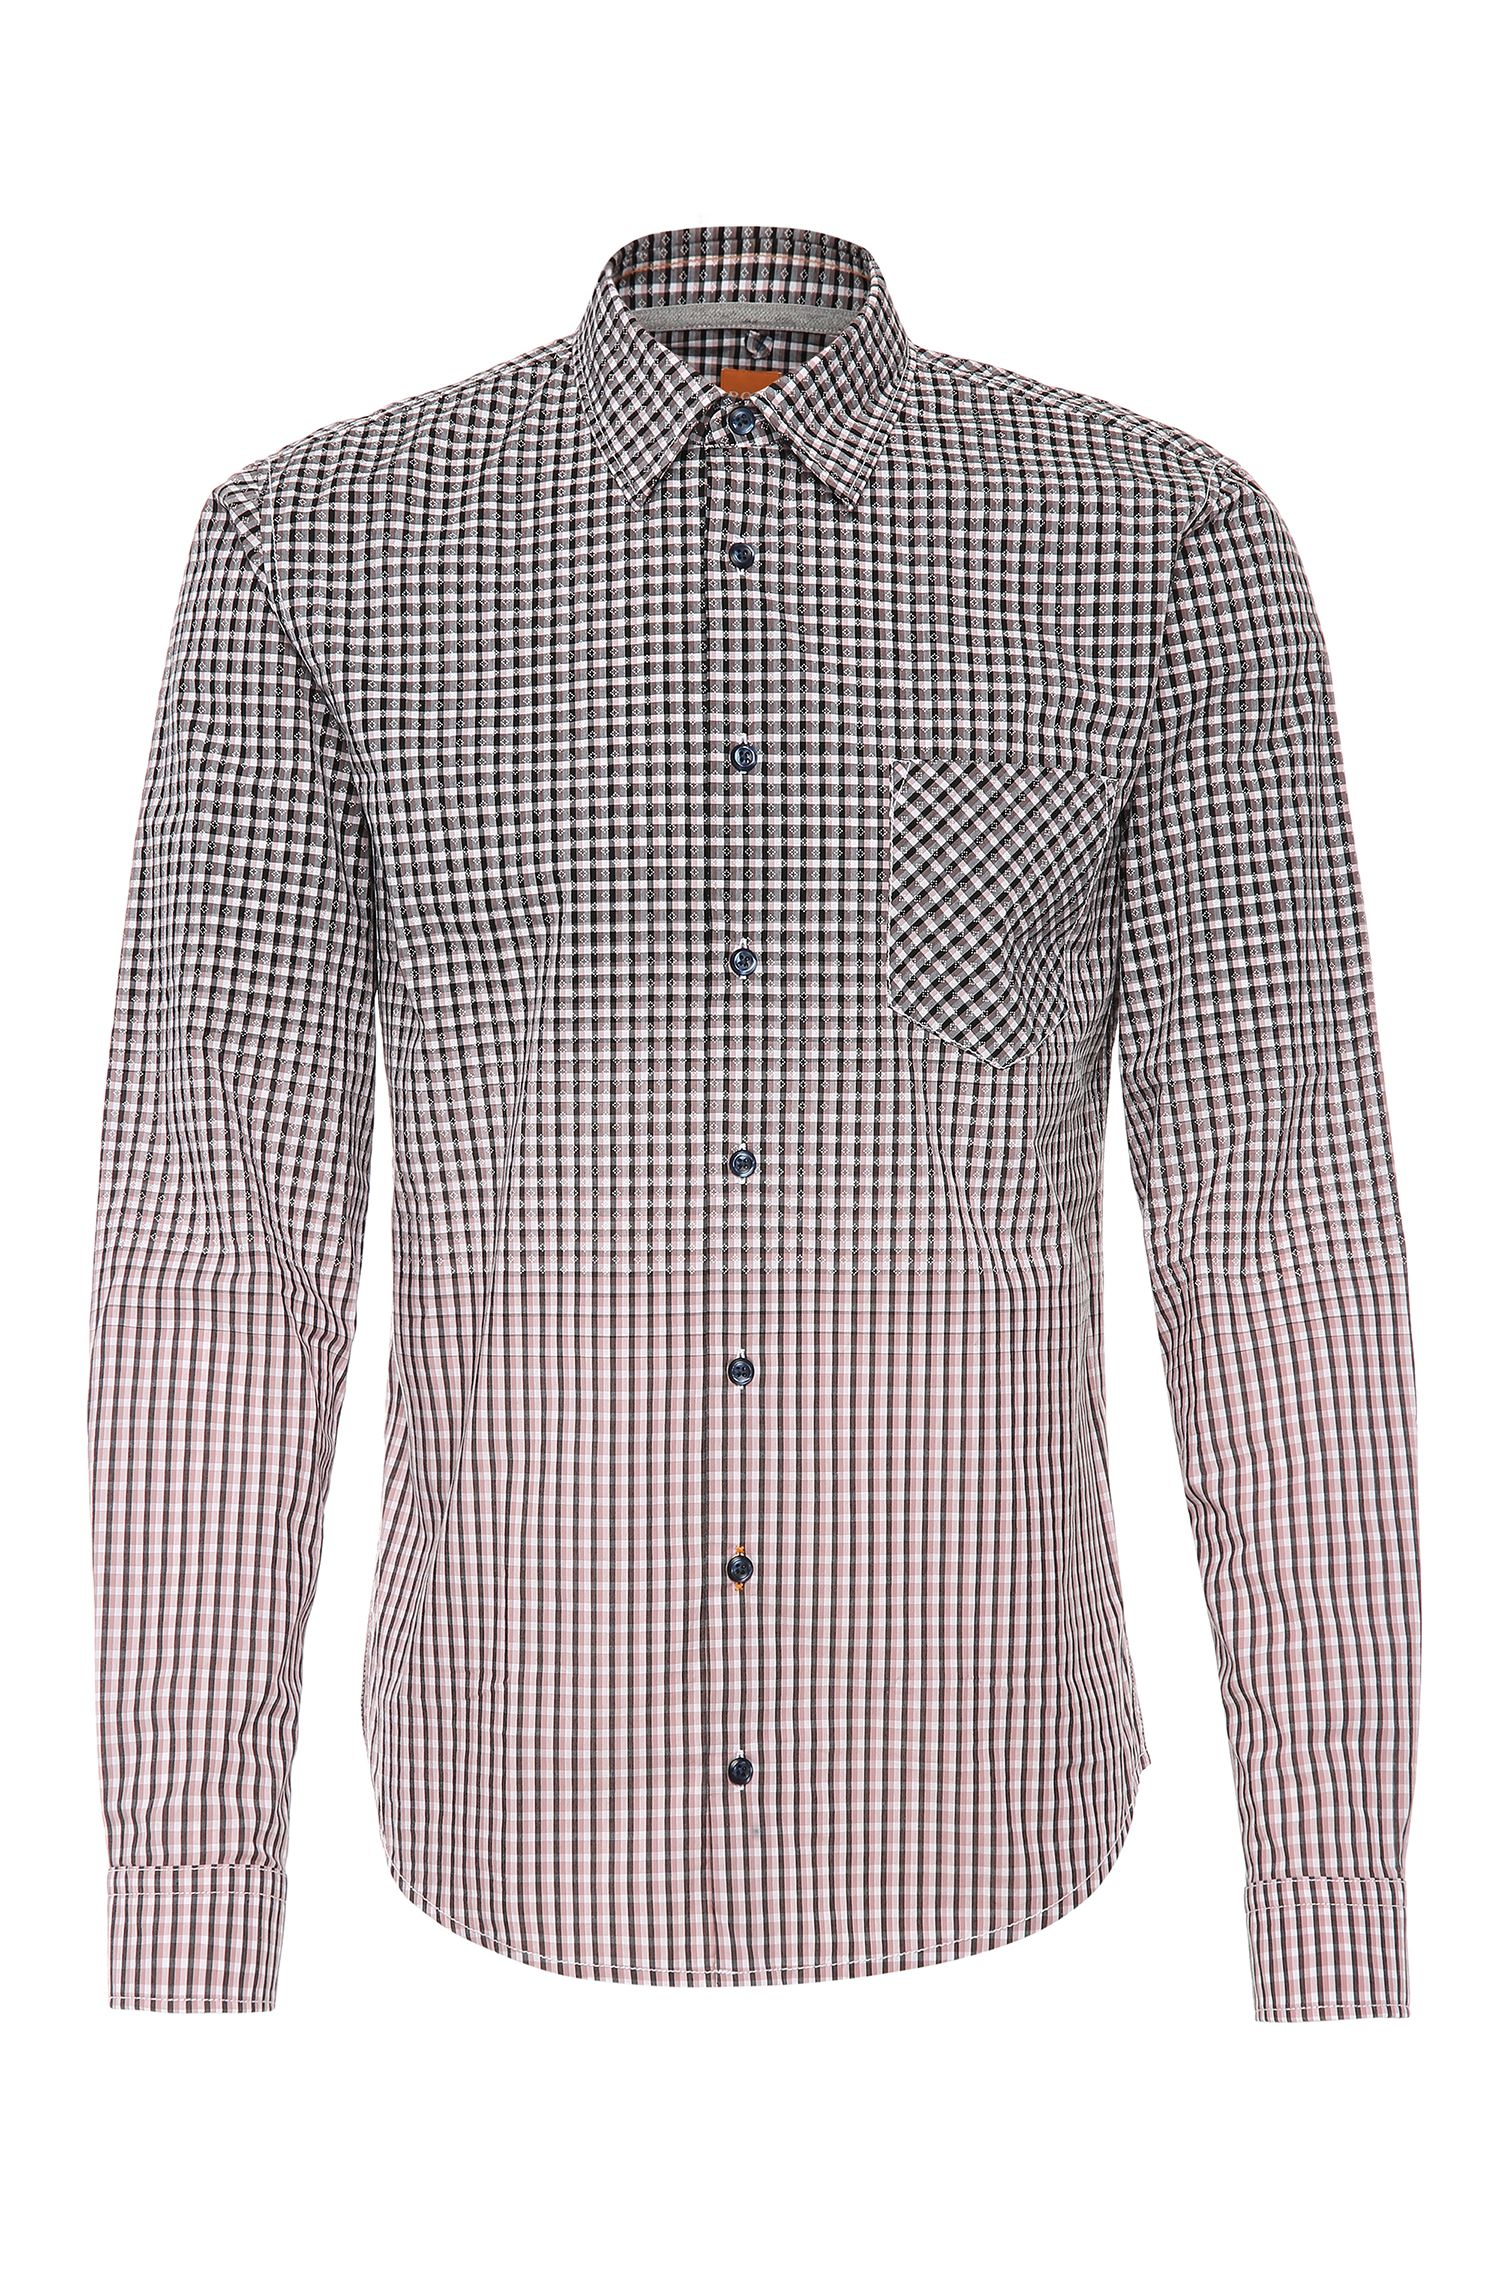 Cotton Ombre Printed Button Down Shirt, Slim Fit | EnameE